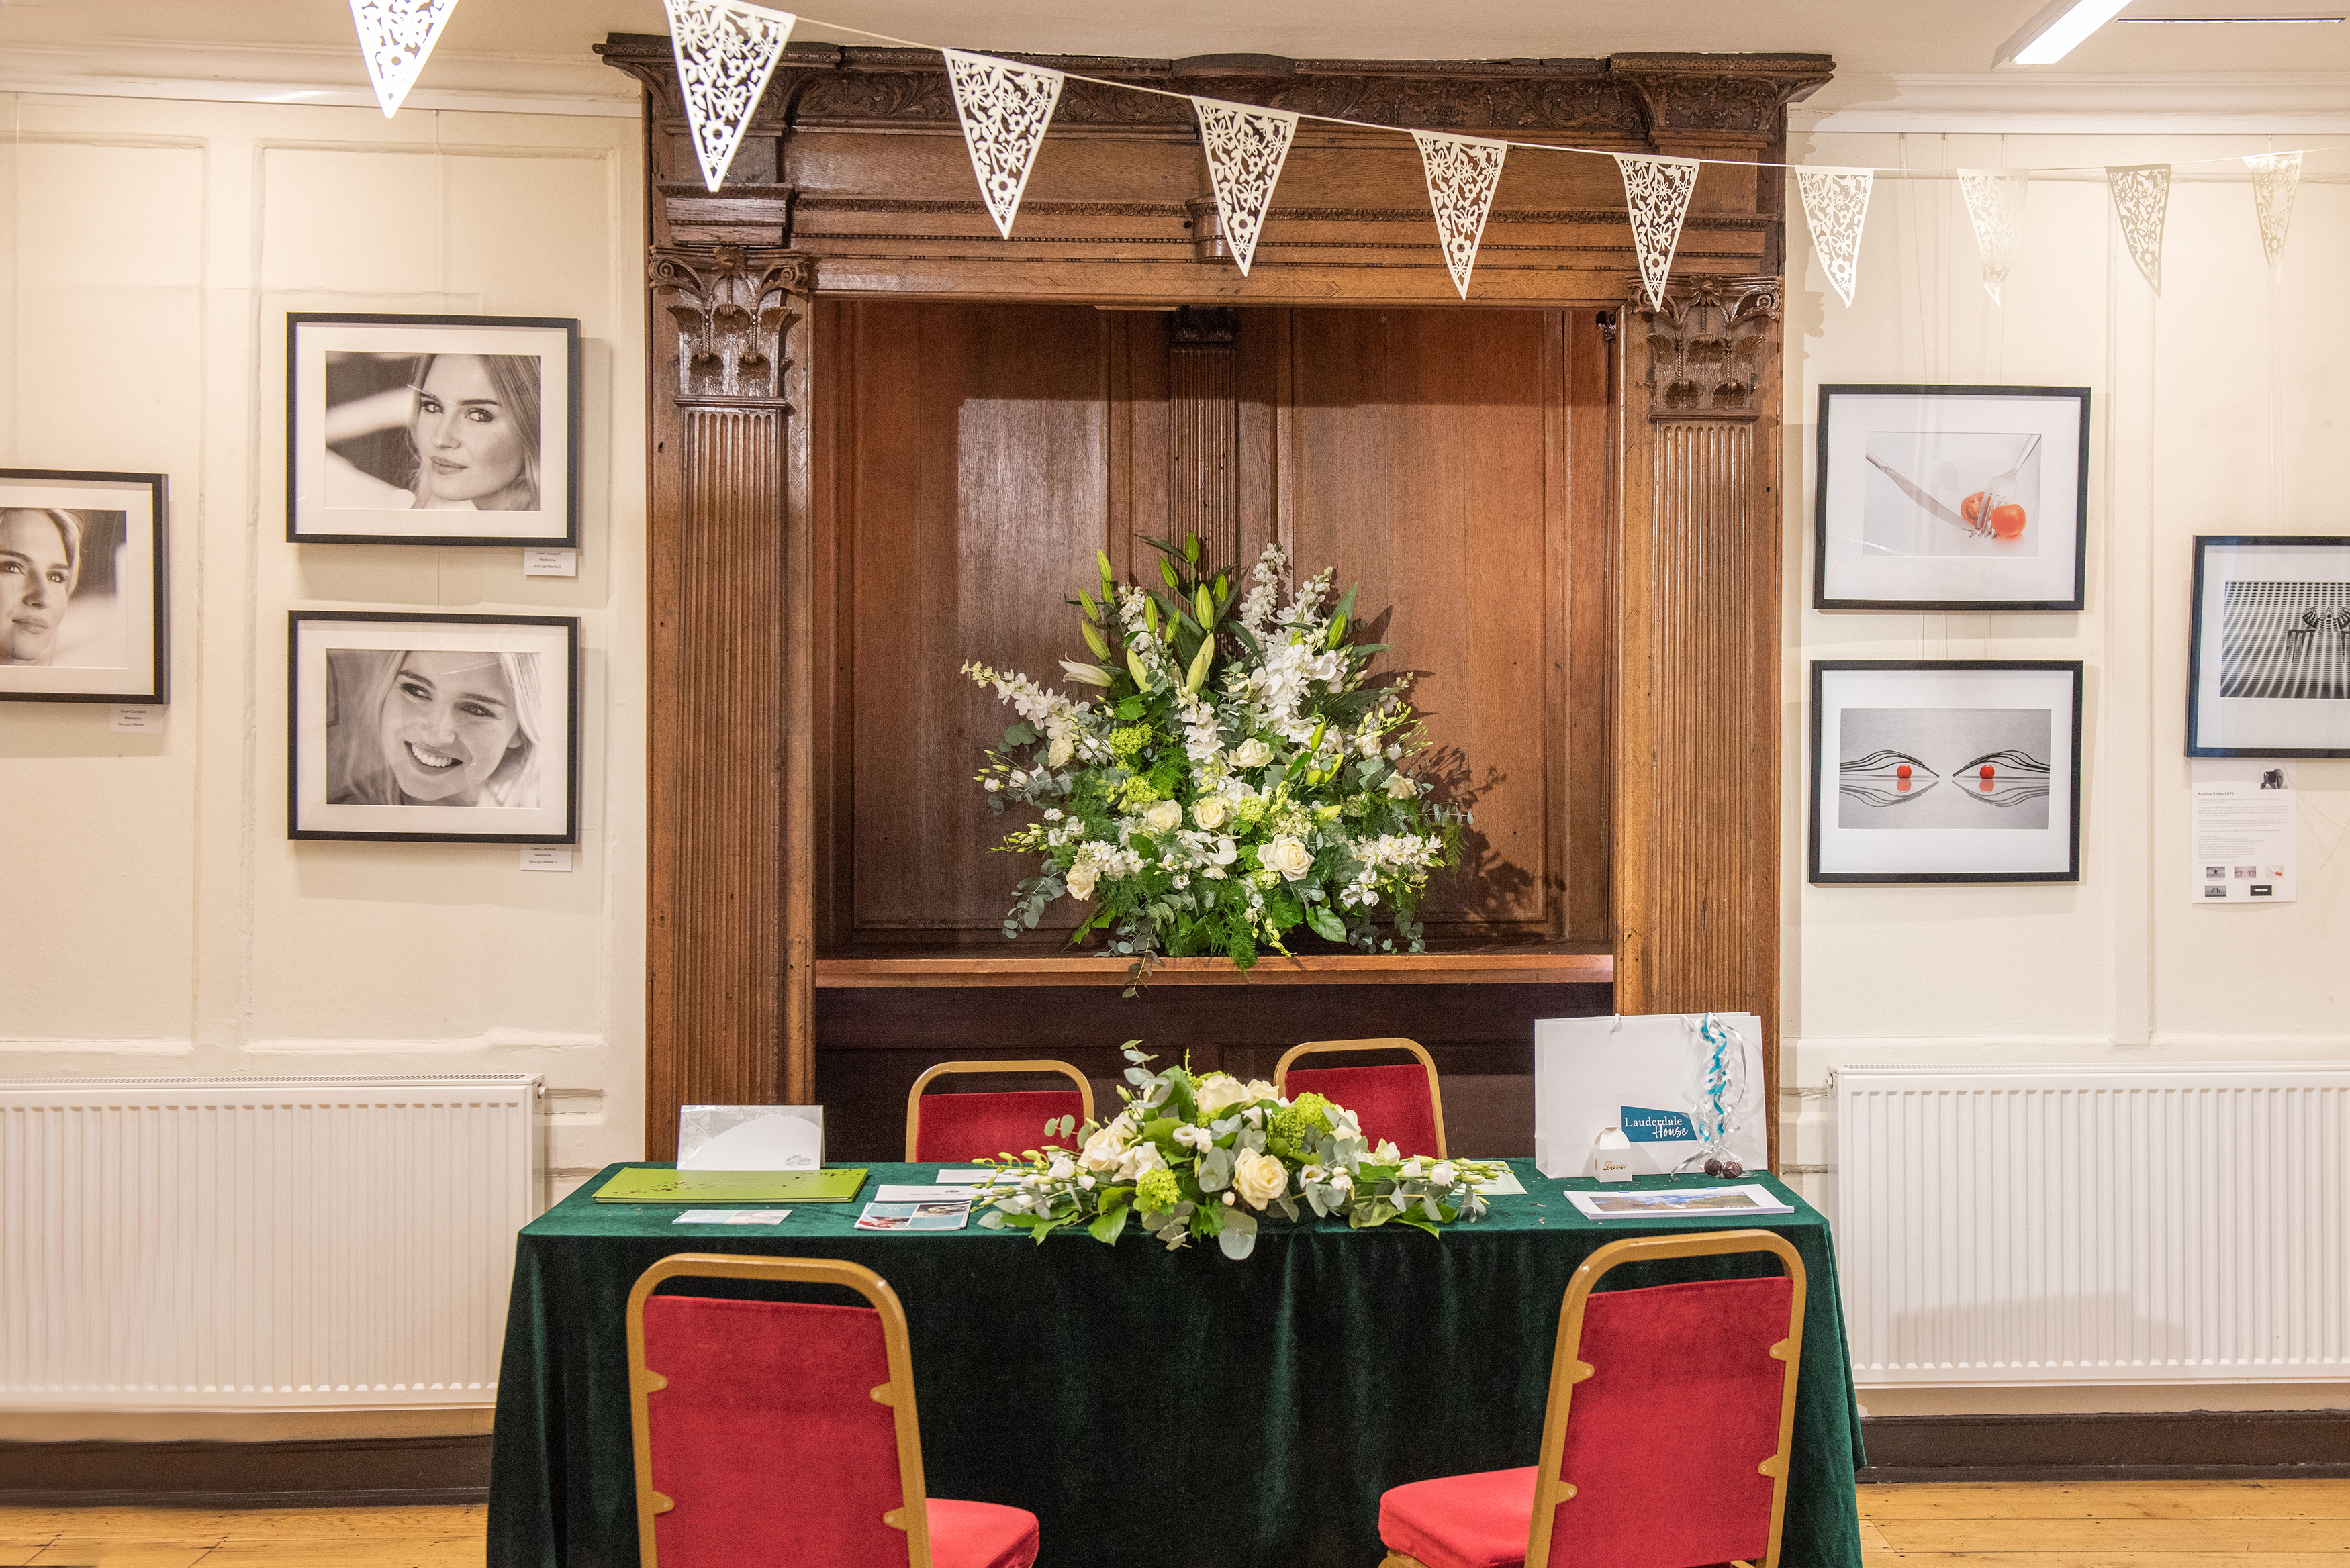 Ceremony set up in Entrance Hall